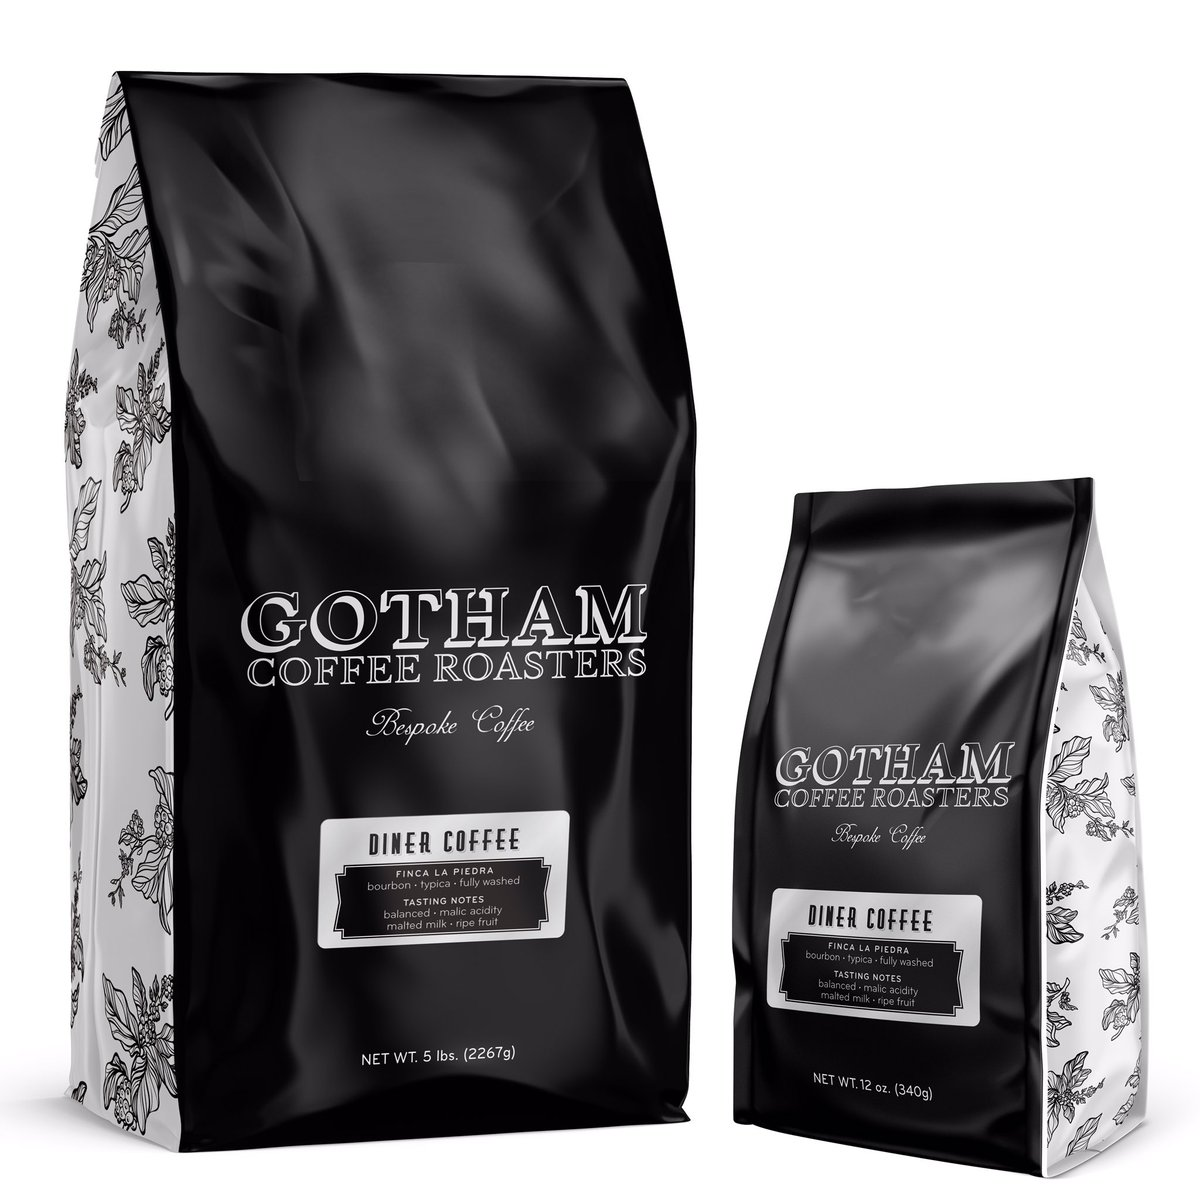 We can ship anywhere in the US. Promo code, TELECOMMUTE. Our coffee bar is closed but we are roasting and running a with a skeleton crew. Just so we can serve you and stay in business. gothamroasters.com